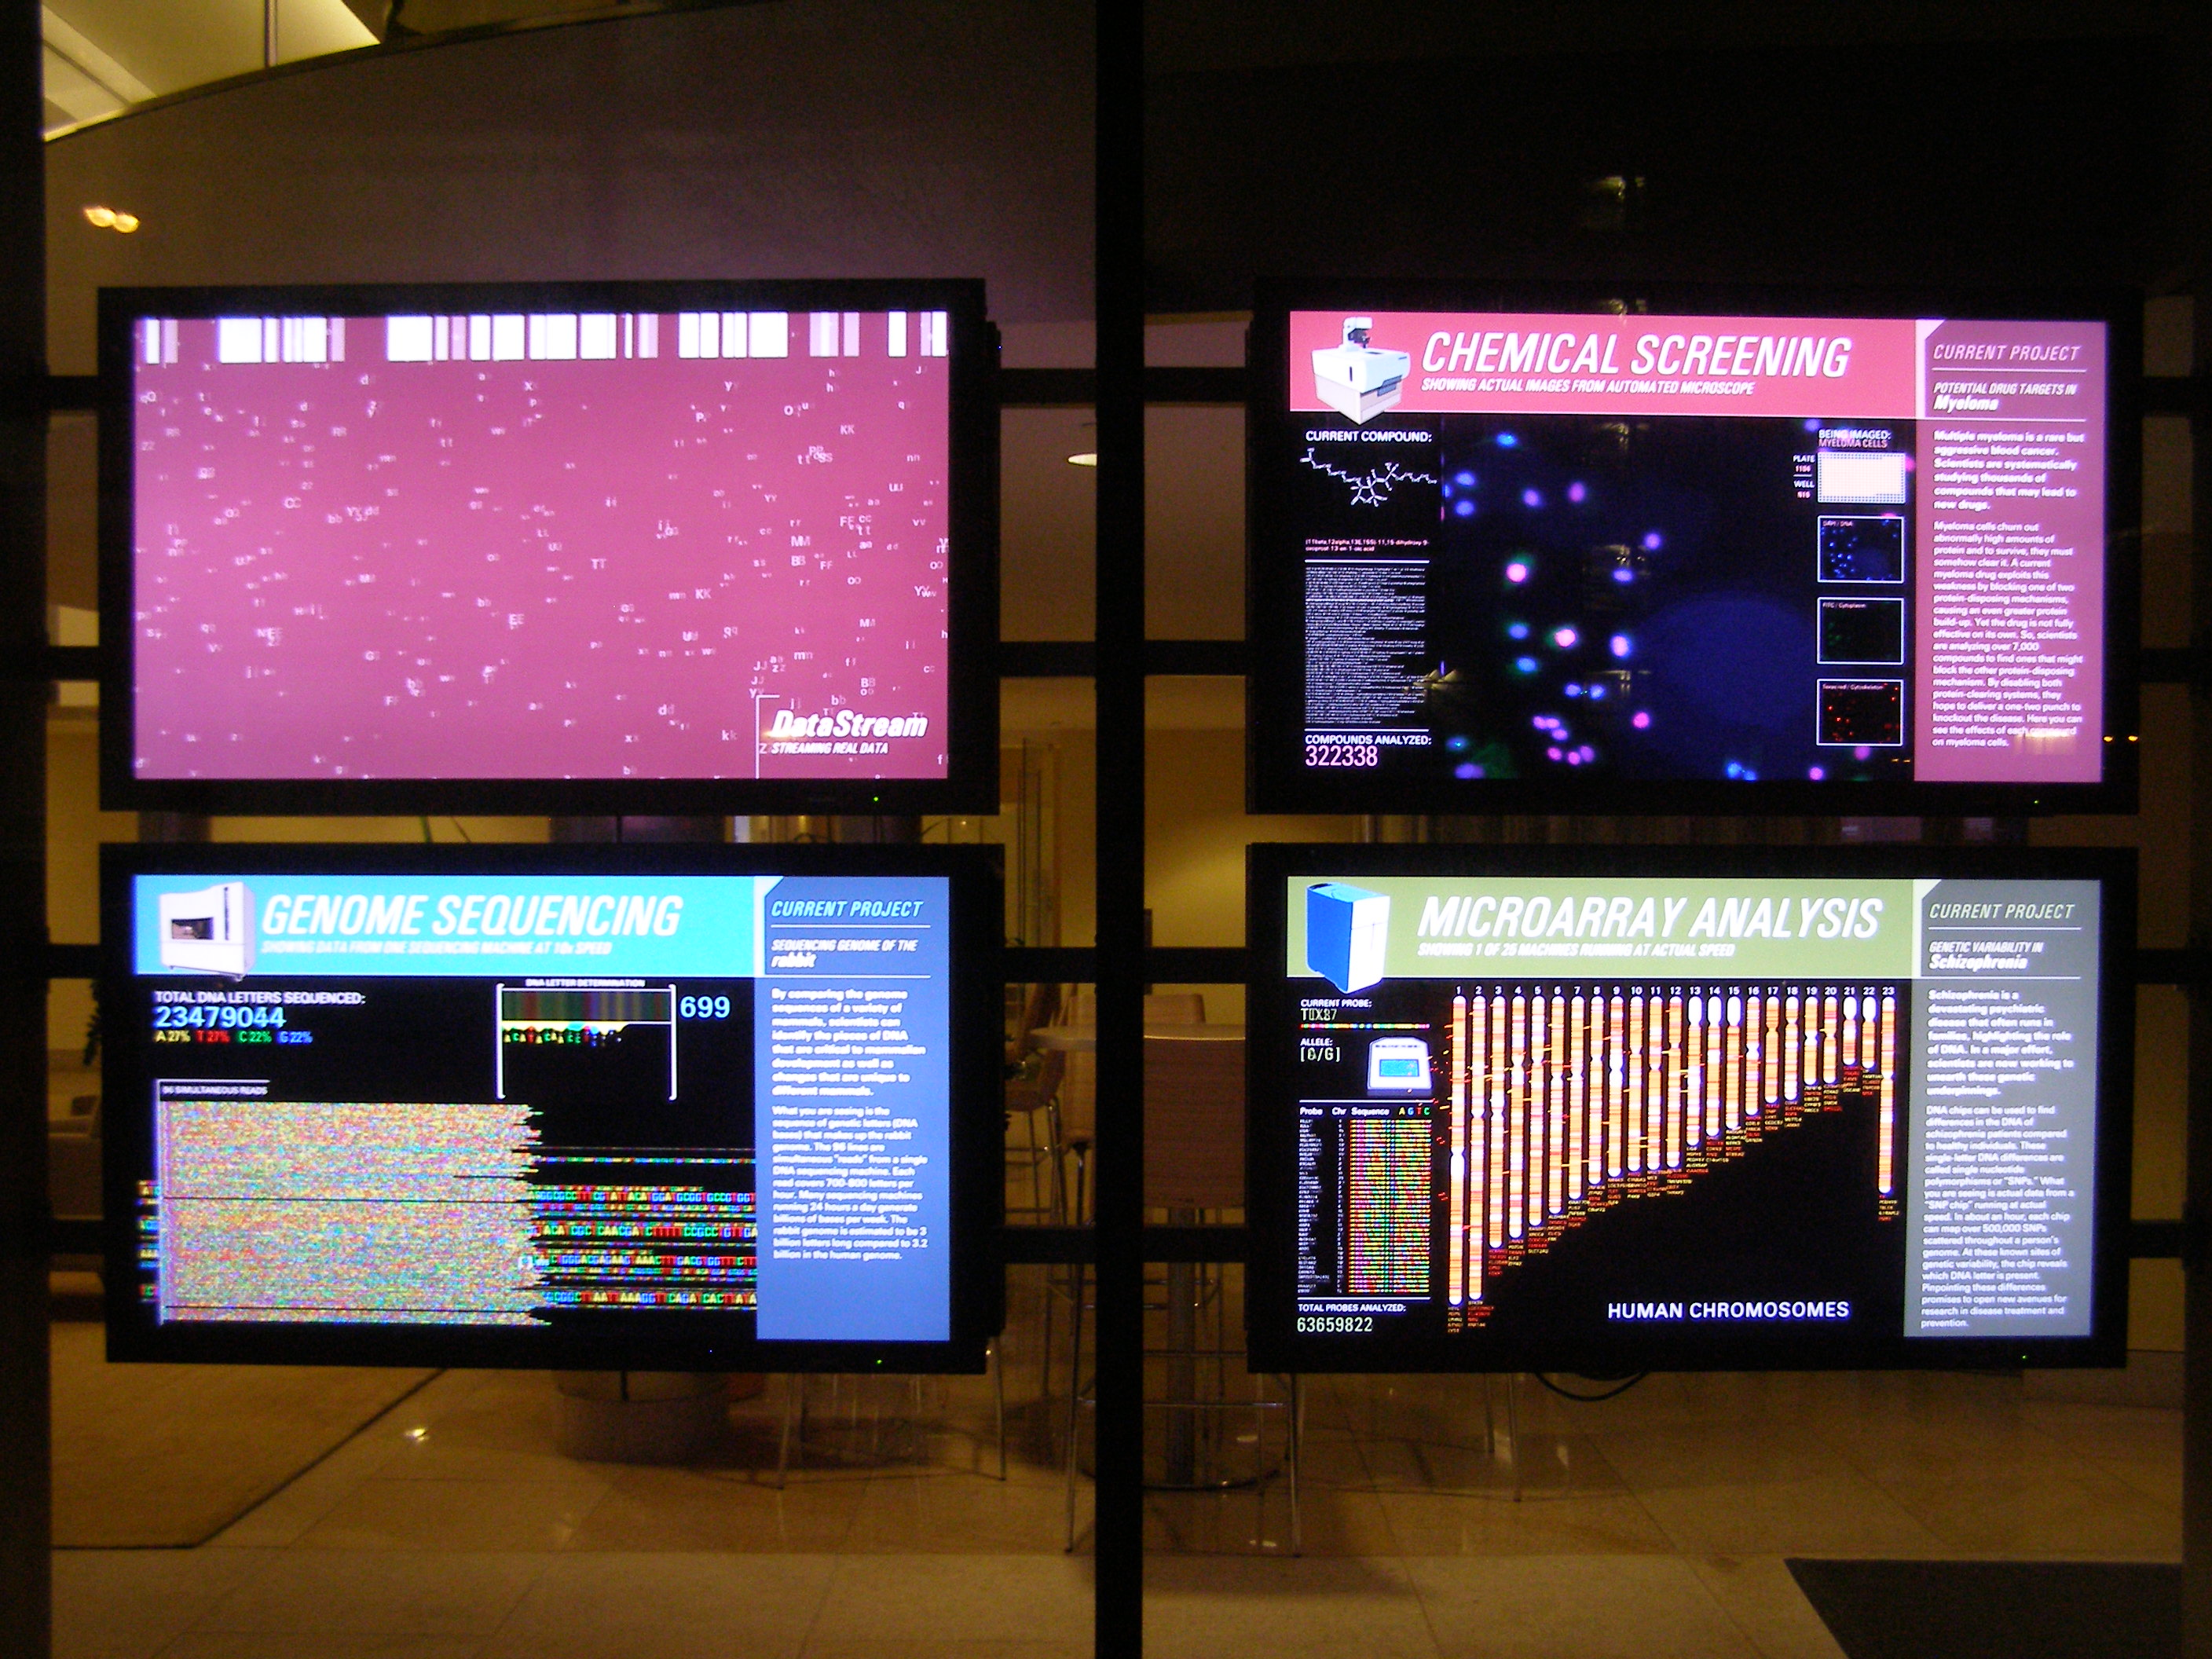 Four monitors facing the street highlight research areas